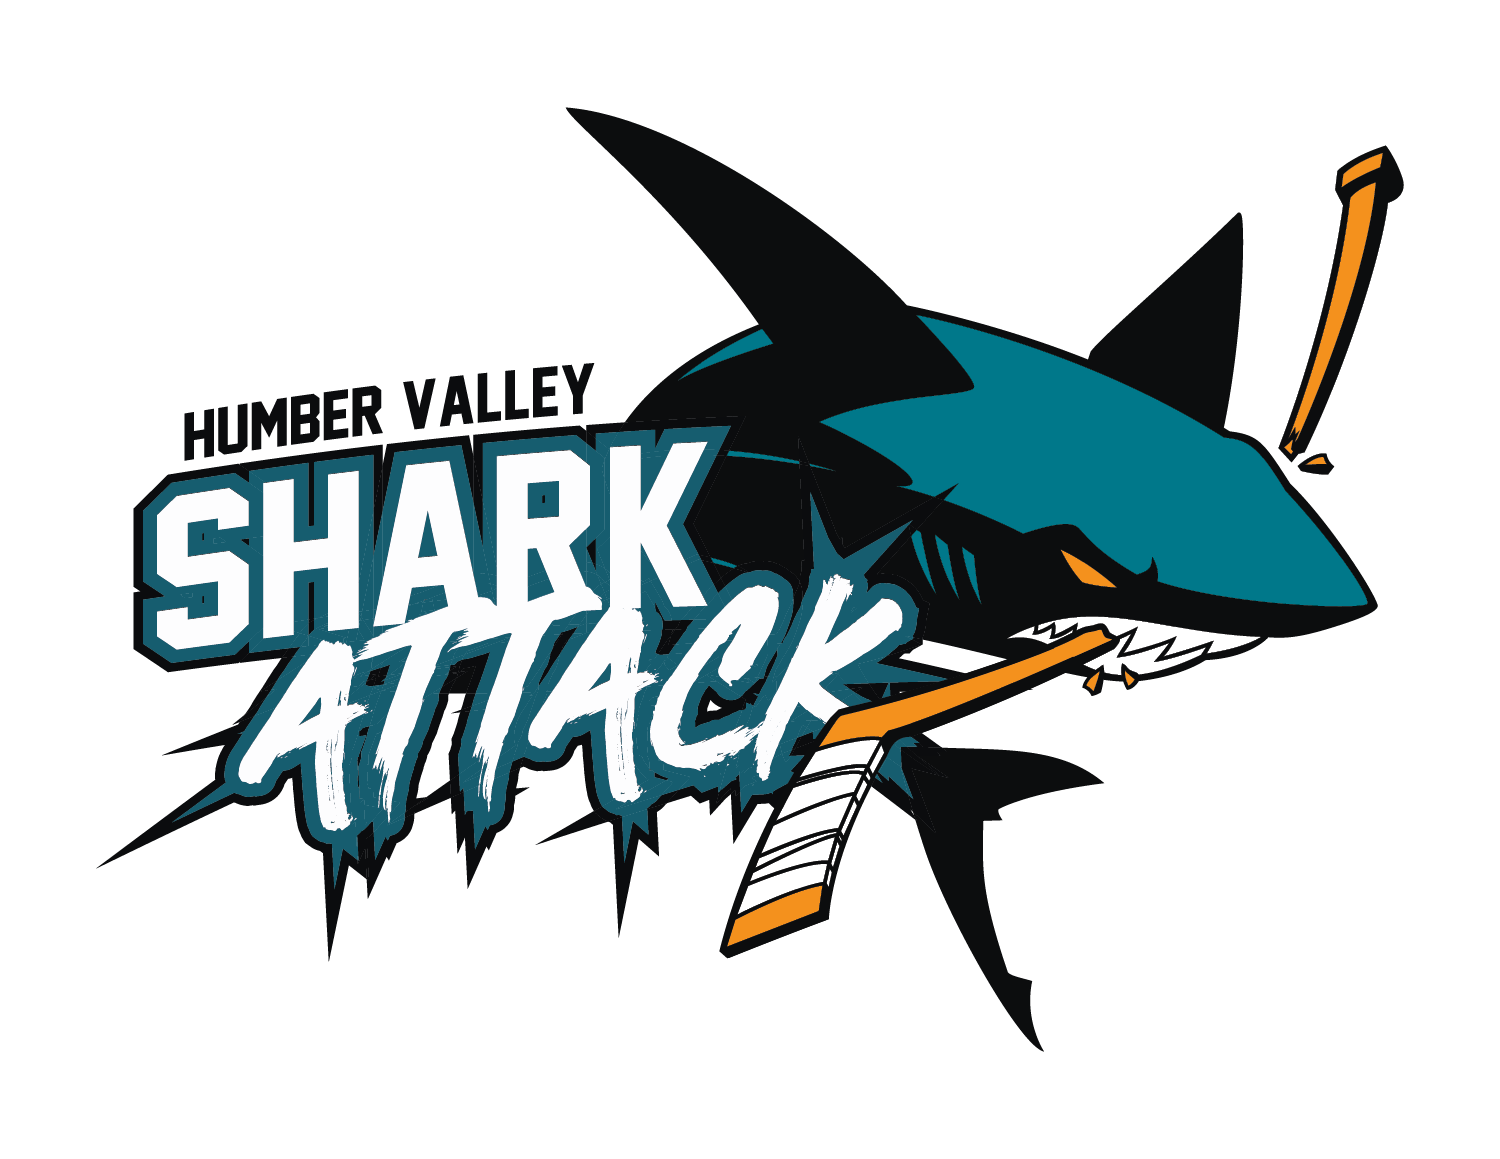 Humber Valley Shark Attack Tournament